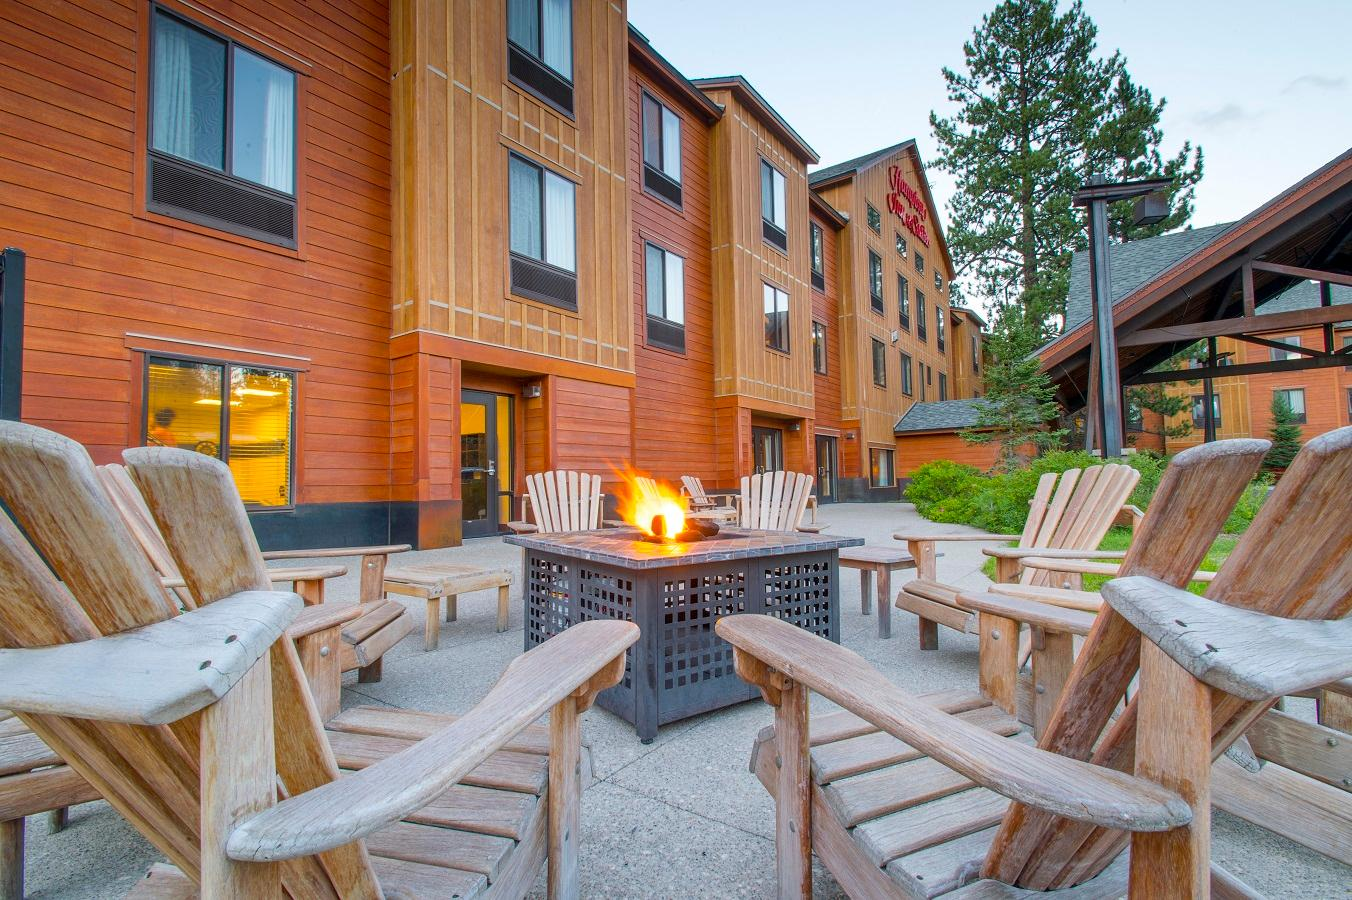 Outdoor fire pit area in front of the Hampton Inn and Suites Tahoe Truckee.